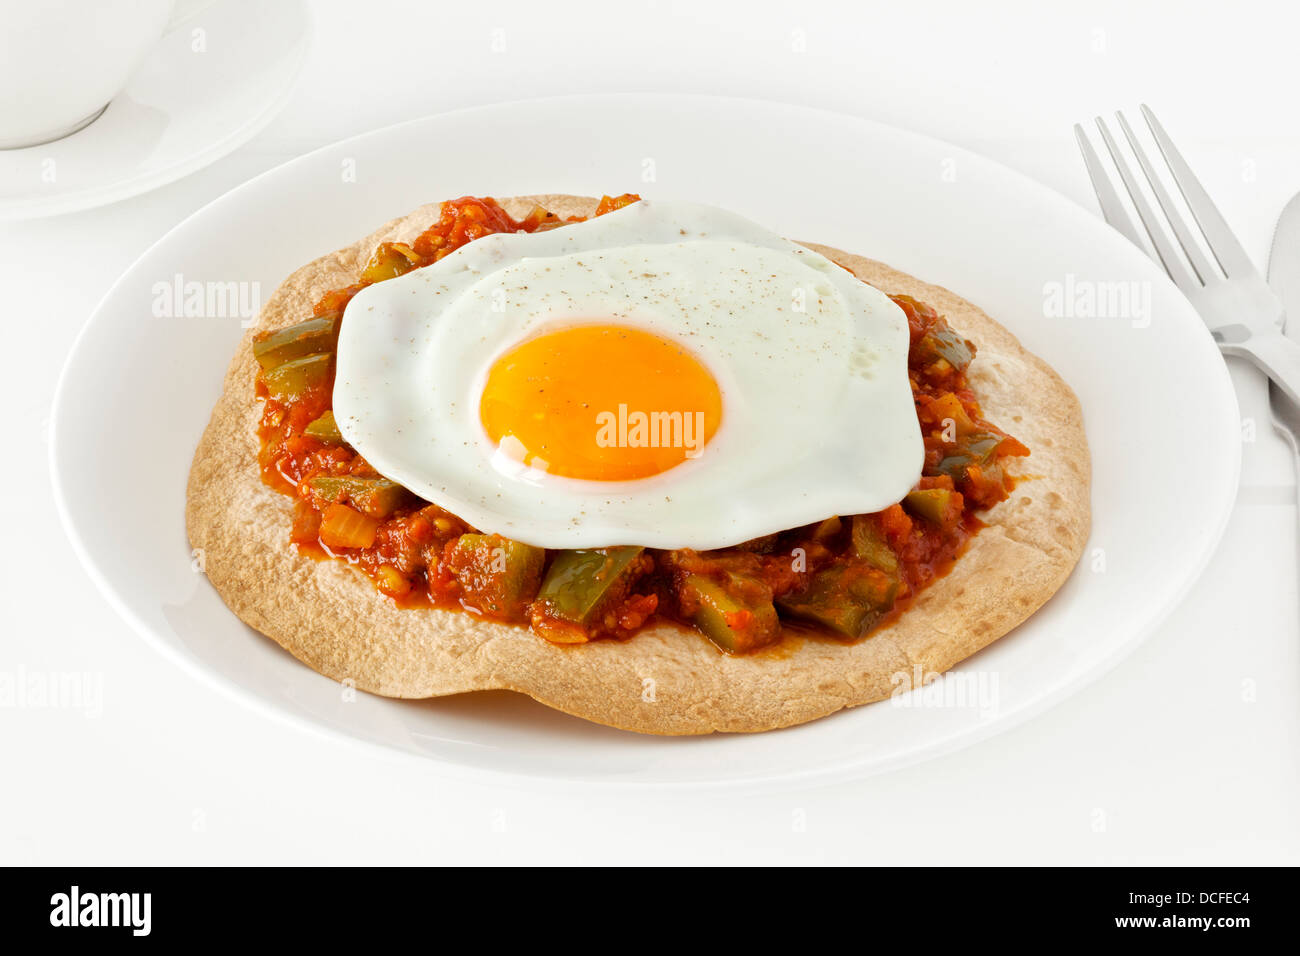 Huevos Rancheros - Mexican style breakfast of a tortilla, topped with salsa ranchera and a free range fried egg. - Stock Image